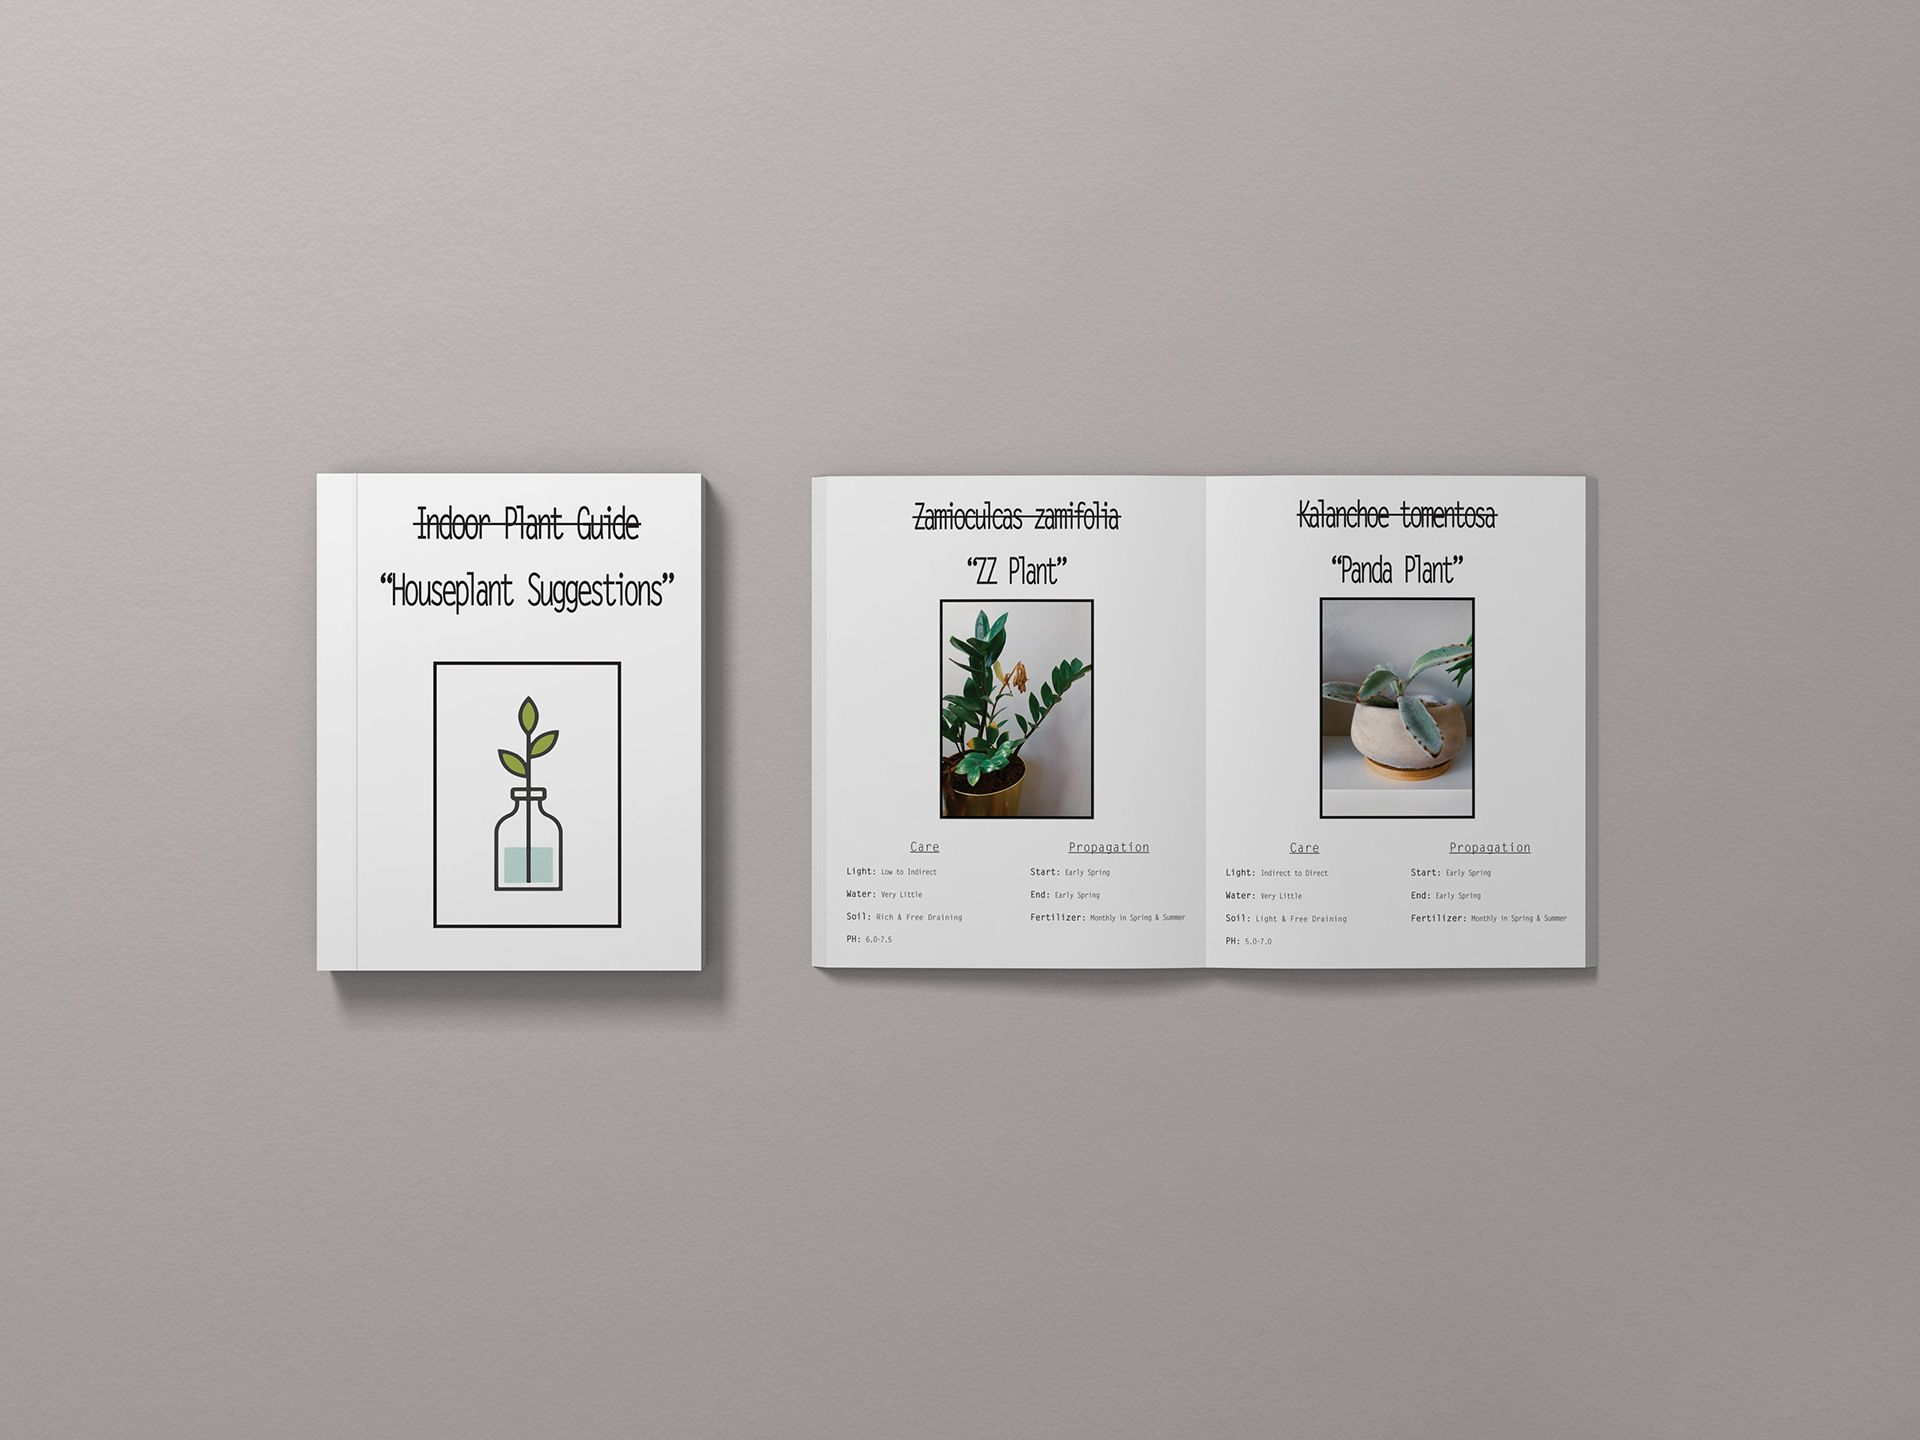 A design plant book guide. Shows succulents and how to care for them in a humorous way